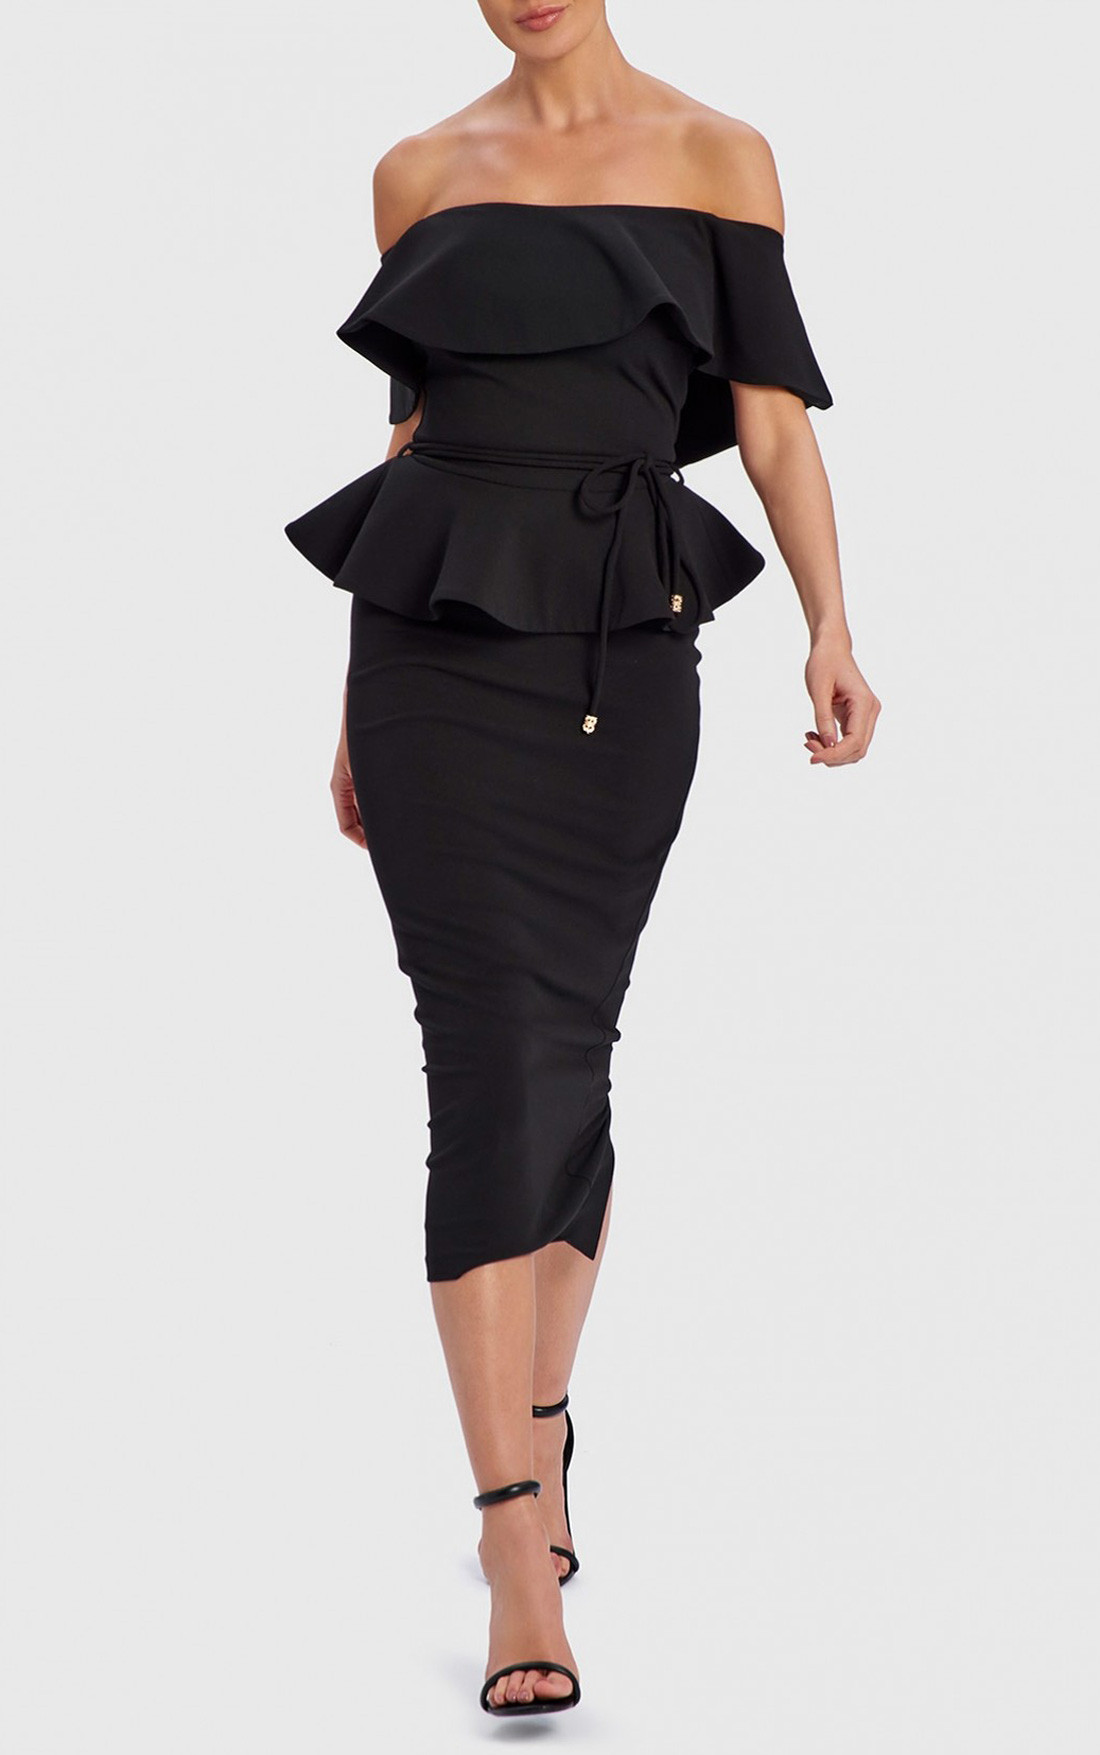 Forever Unique - Deanna Black Off-Shoulder Peplum Midi Dress (WF9002)